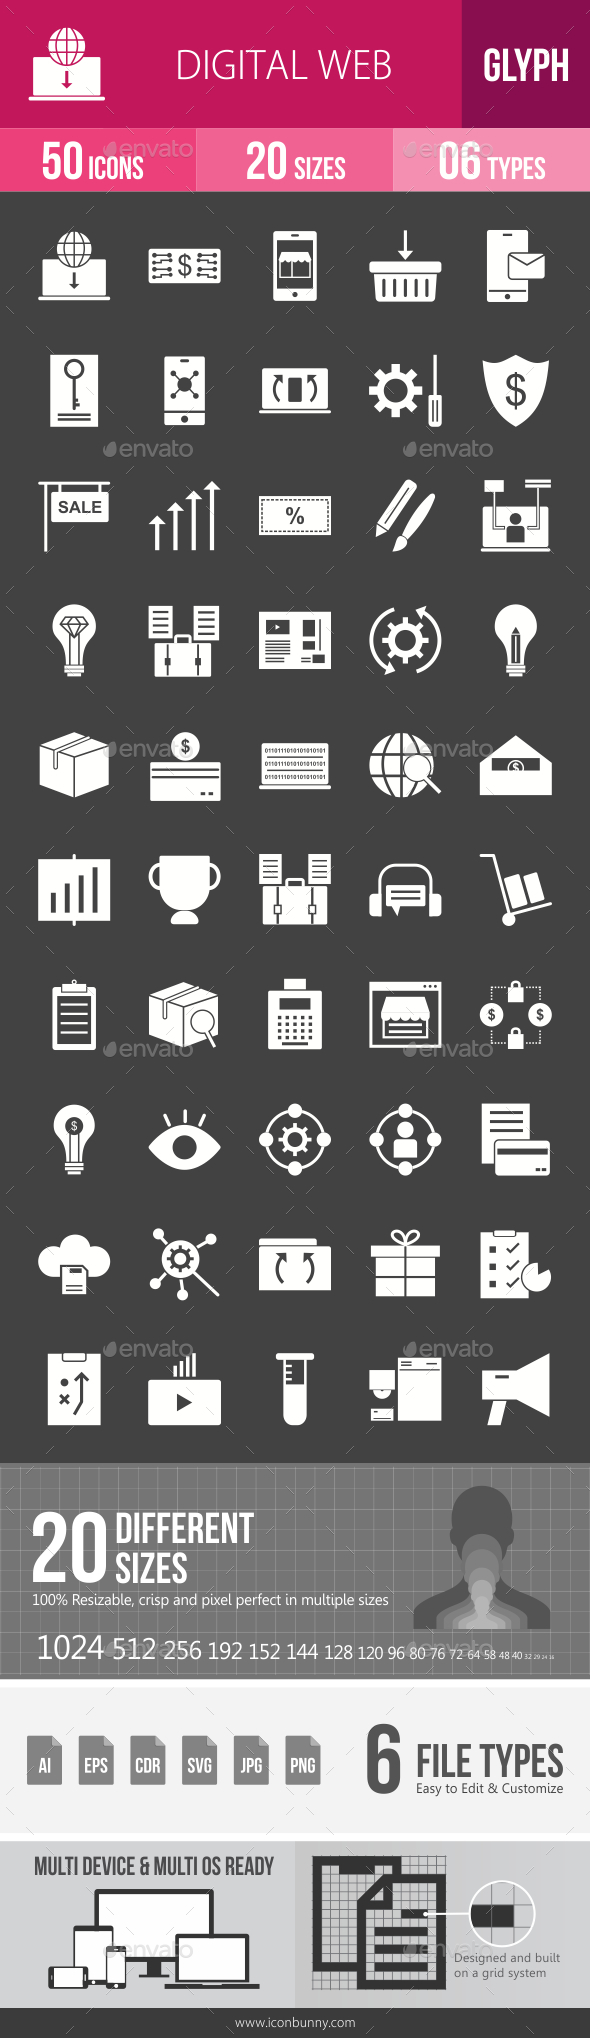 Digital Web Glyph Inverted Icons - Icons